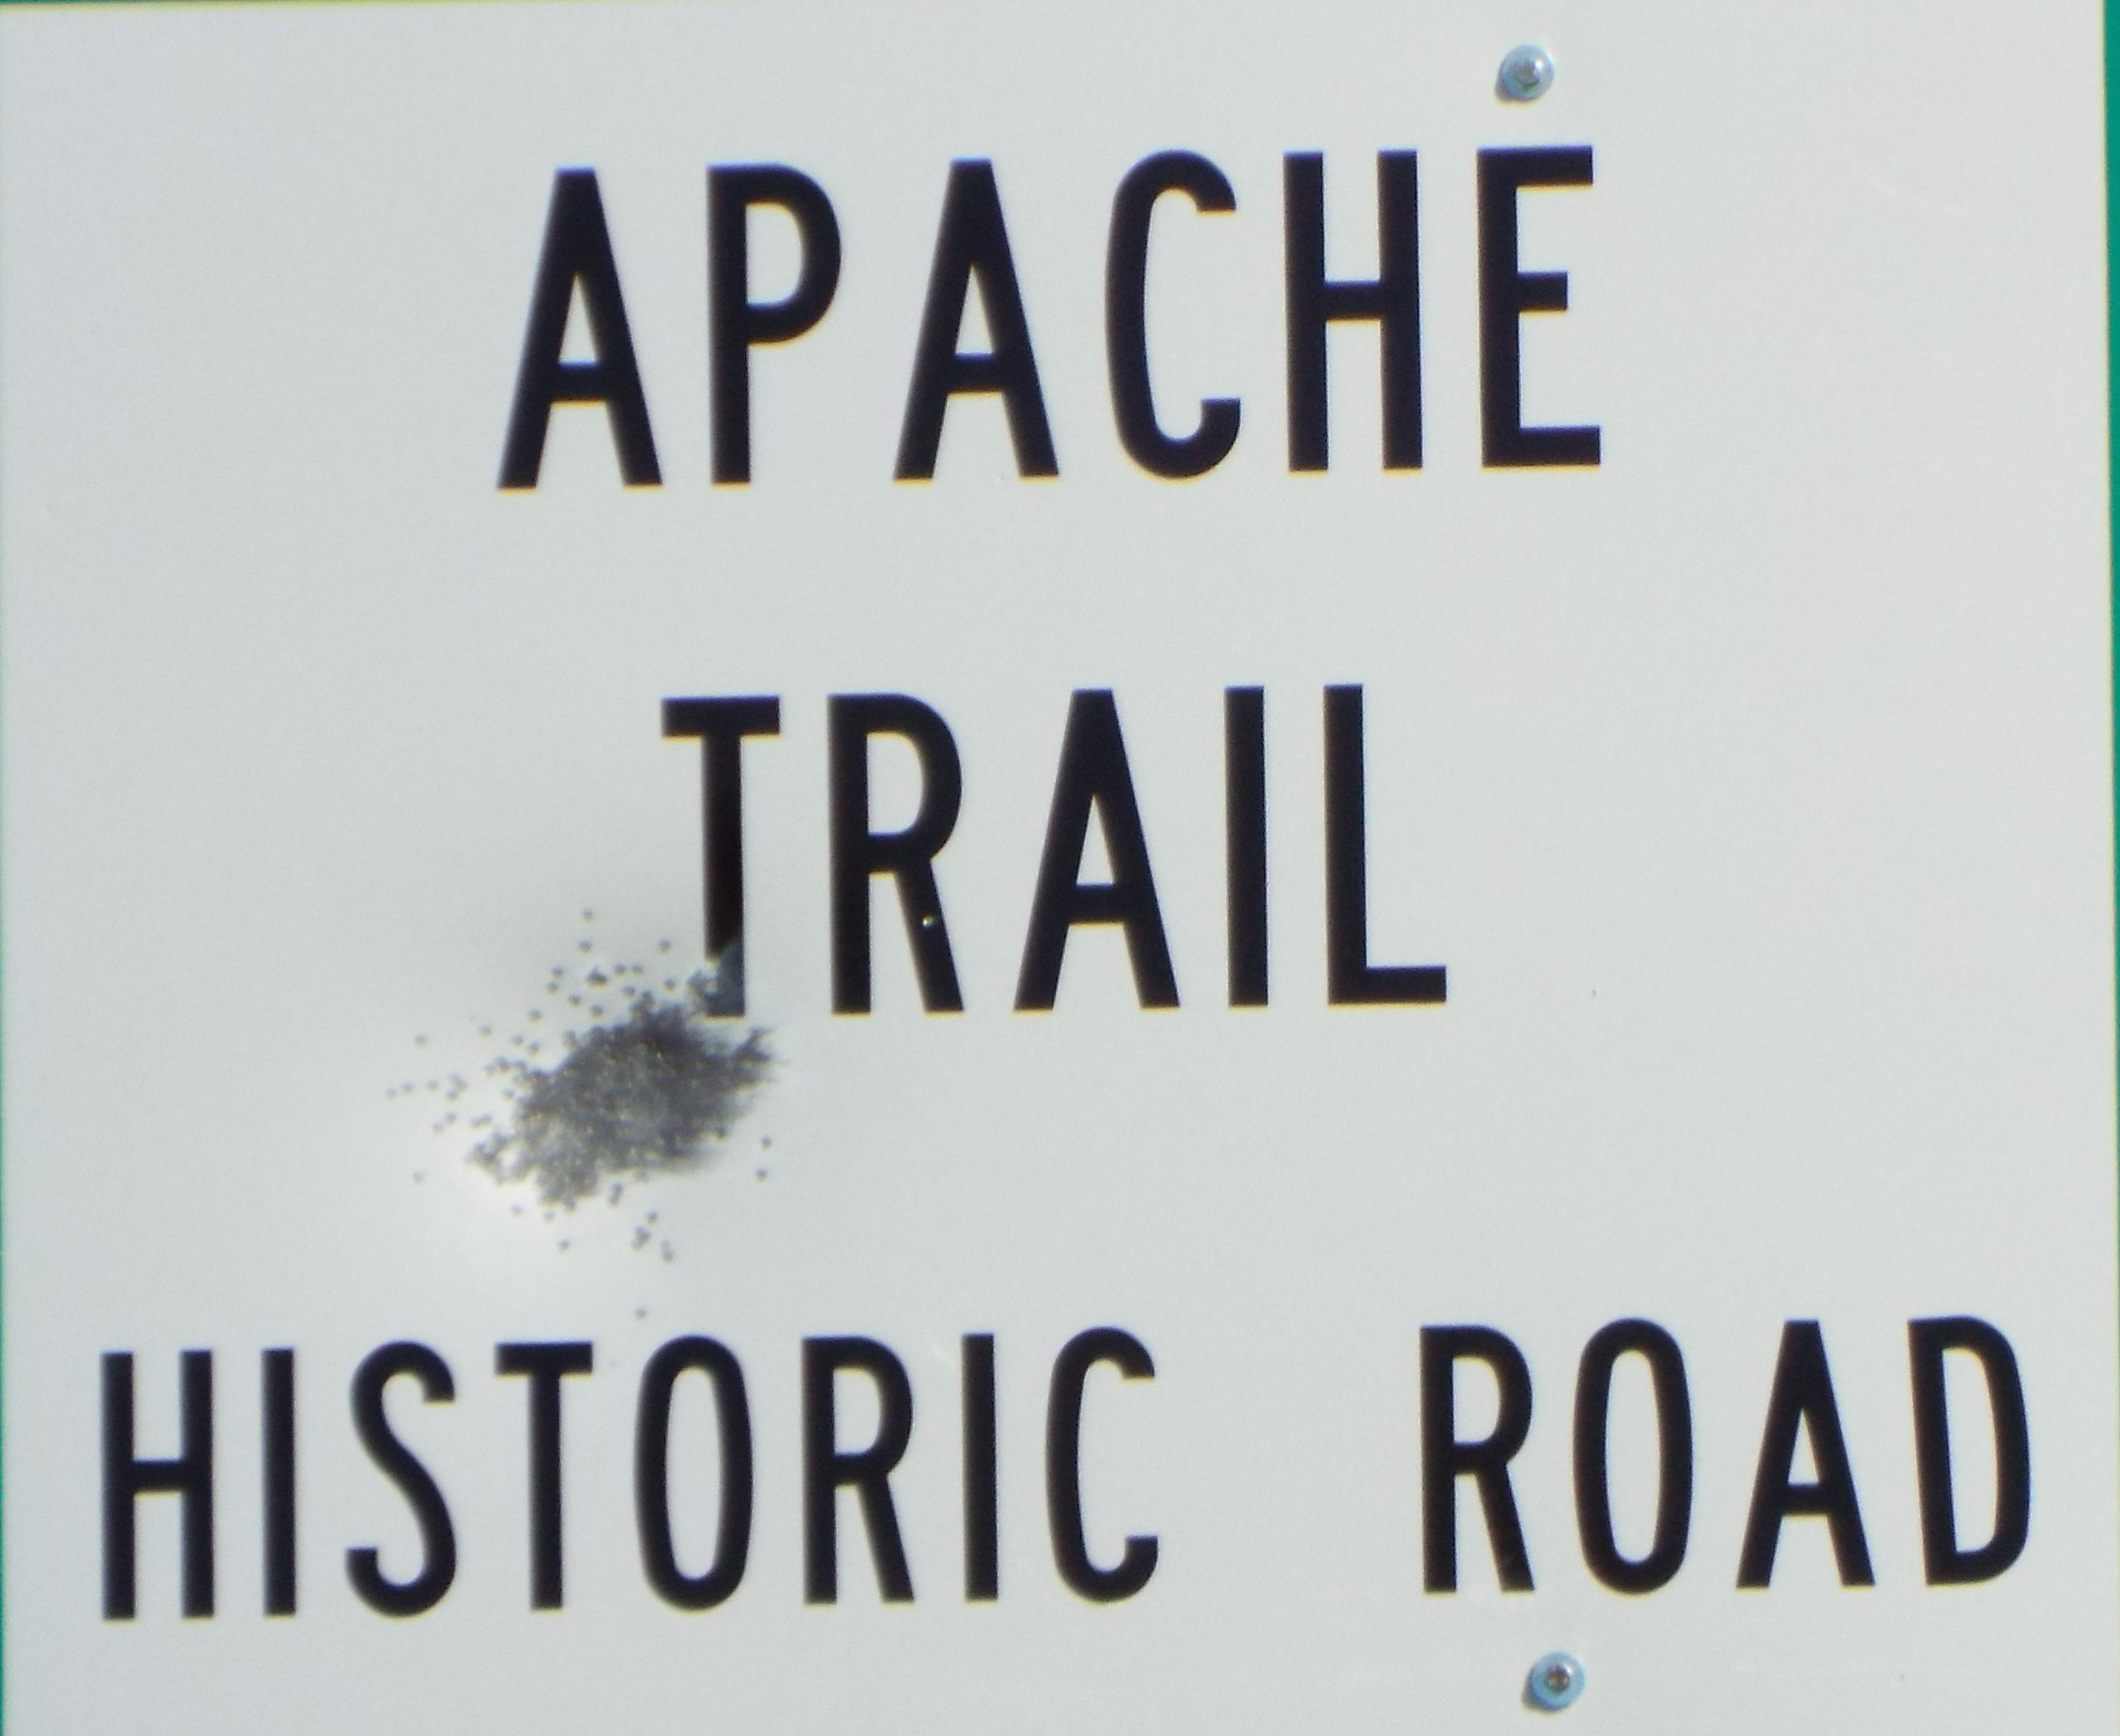 Apache Trail - Wikipedia on map of caves in oklahoma, lakes in arizona, street map apache junction arizona, map of the arizona trail, map of apache lake arizona, drive the apache trail arizona, lost dutchman mine map arizona, map of goldfield ghost town, map of roosevelt, cutthroat campground arizona, mt. baldy arizona, map of fort apache arizona, map of lakes off of i 70 in colorado, map of the apache, goldfield ghost town phoenix arizona, apache reservation arizona, map of arizona's highways only, cities in apache county arizona, ohv trails arizona, map of az,